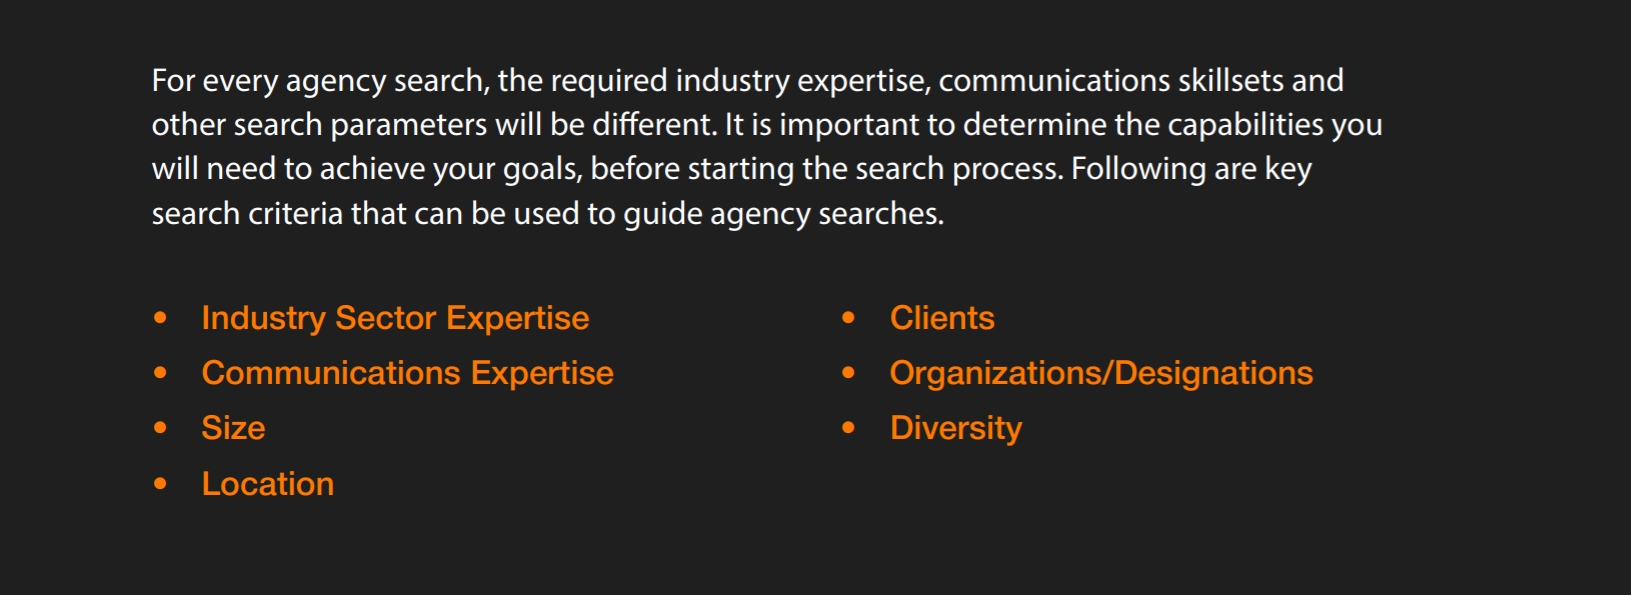 For Every Agency Search